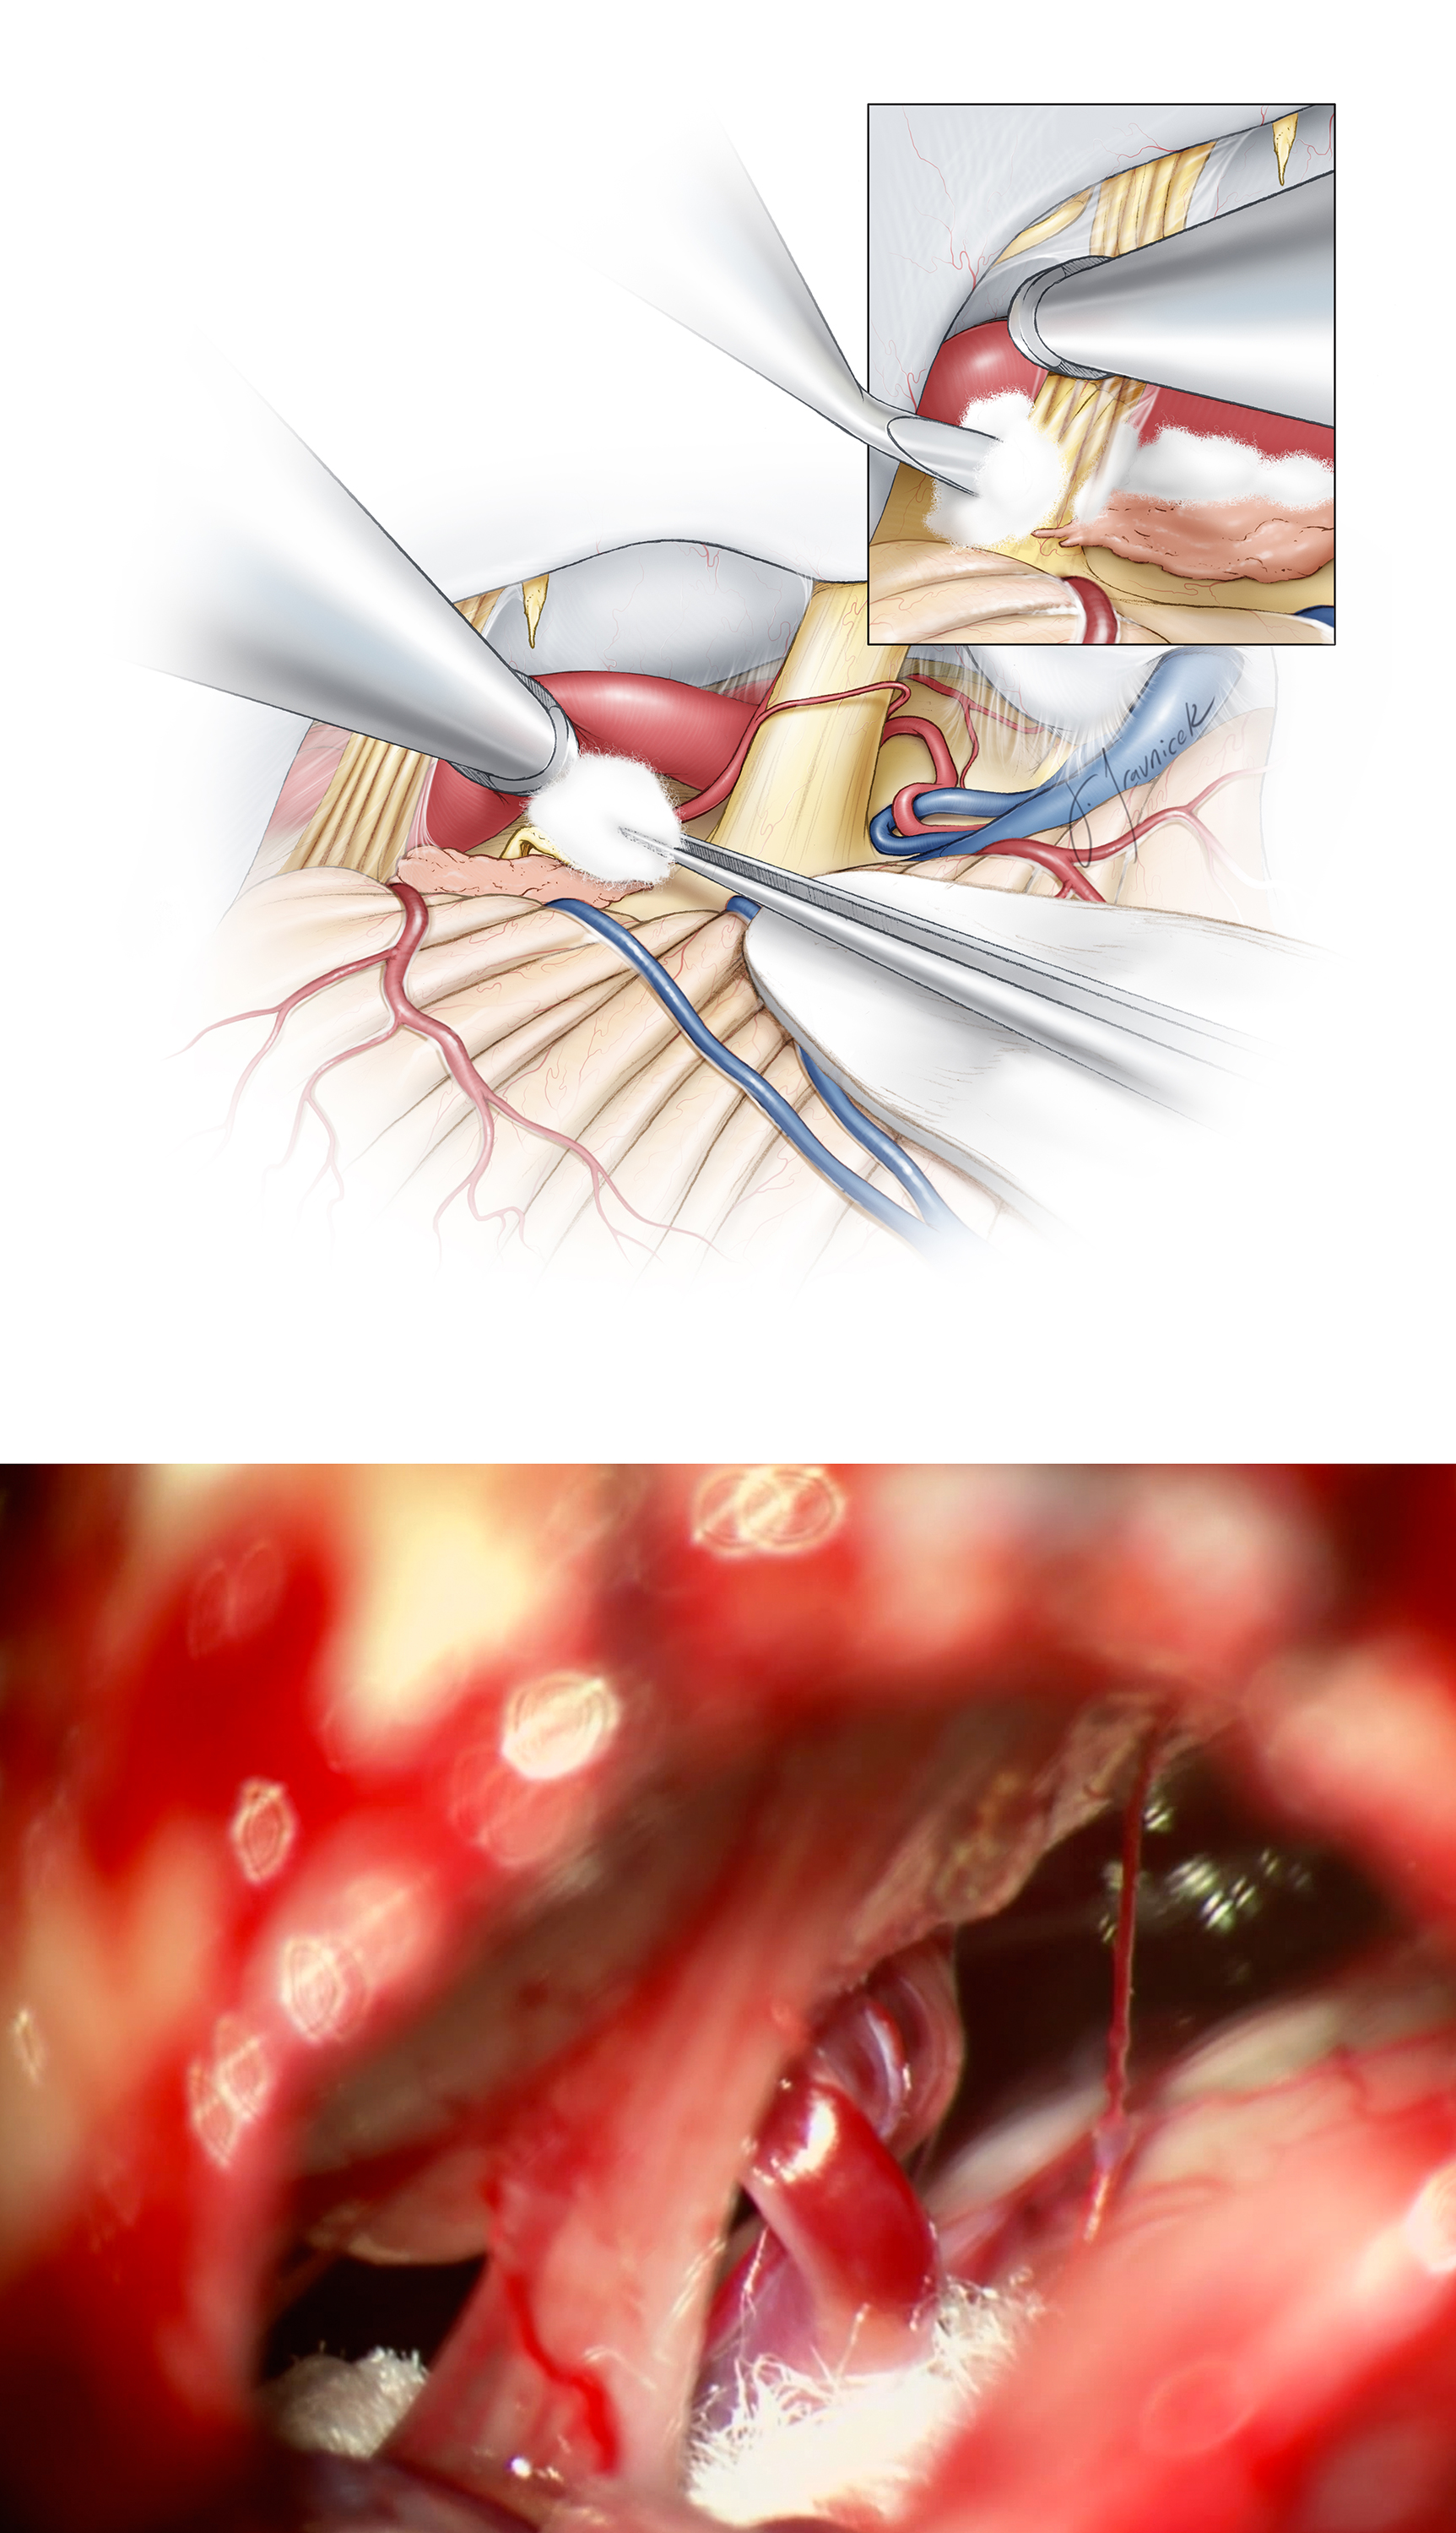 Figure 13: To thoroughly relieve the neurovascular conflict, I implant multiple pieces of shredded Teflon while working above and below CN X. Teflon is also placed between the brainstem and the offending loop at the level of CN X (top image-inset). Sequential introduction of these pieces of Teflon helps with mobilization of the vessel and prevents its return to its original position (bottom image). An excessive amount of Teflon should be avoided as it can cause an inflammatory reaction and chemical meningitis.